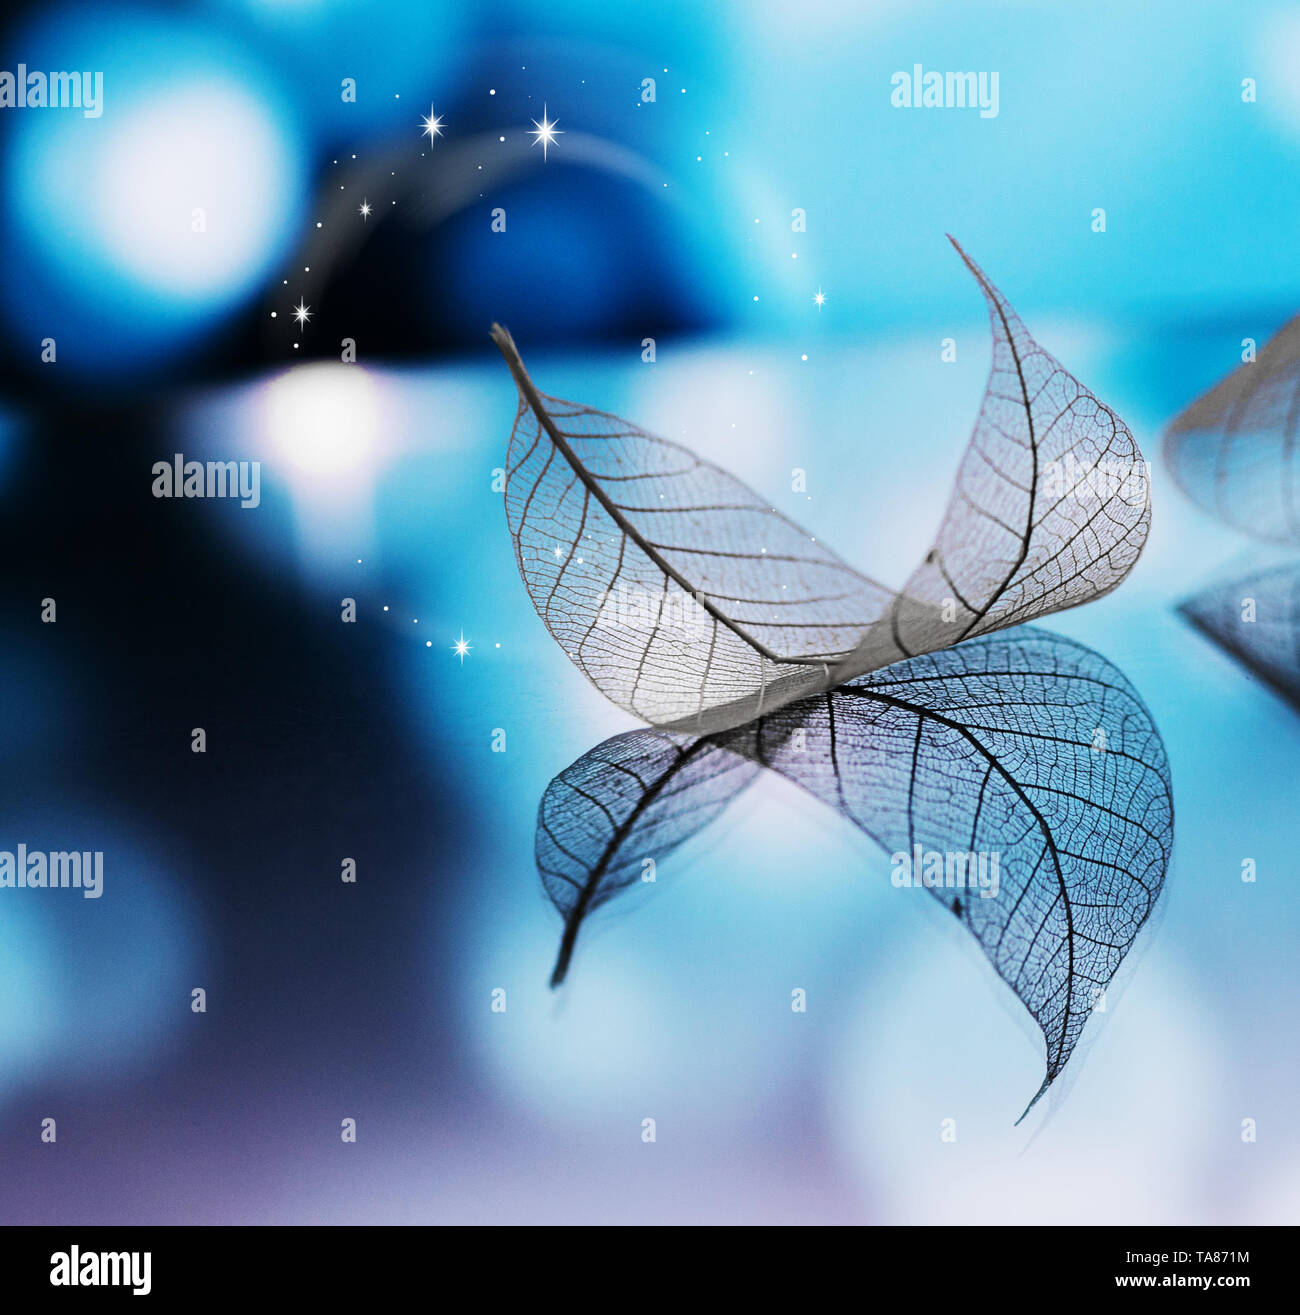 Transparent white leaf are on mirror surface with reflection on dark-blue background, abstract macro with bokeh. Artistic image of ship in lake waters - Stock Image